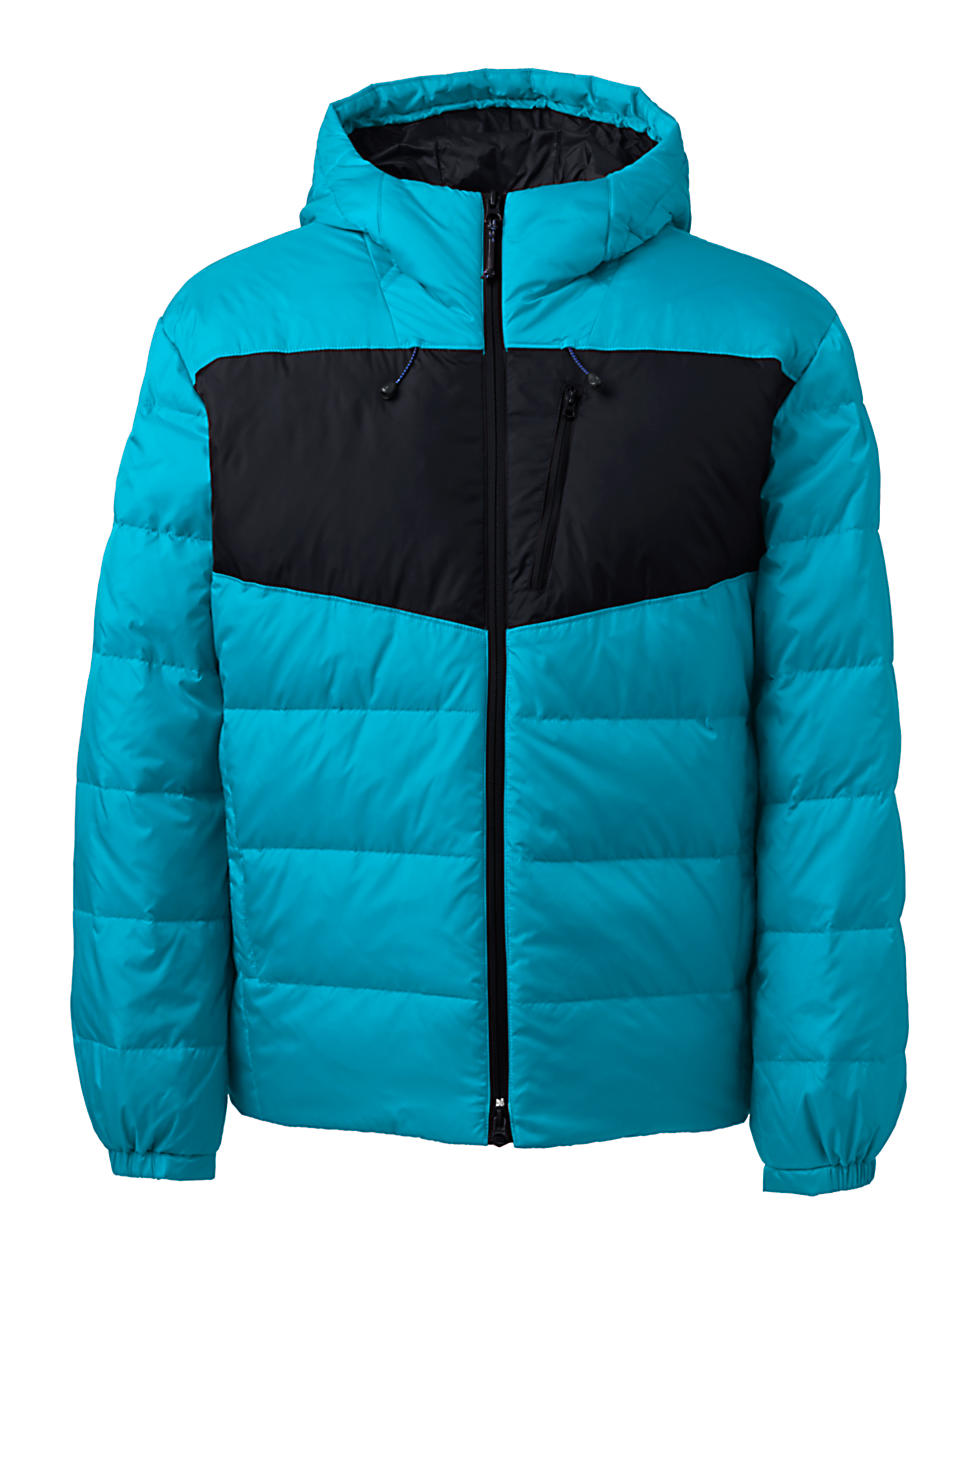 Lands End Mens Expedition Winter Down Puffer Jacket (various colors/sizes)